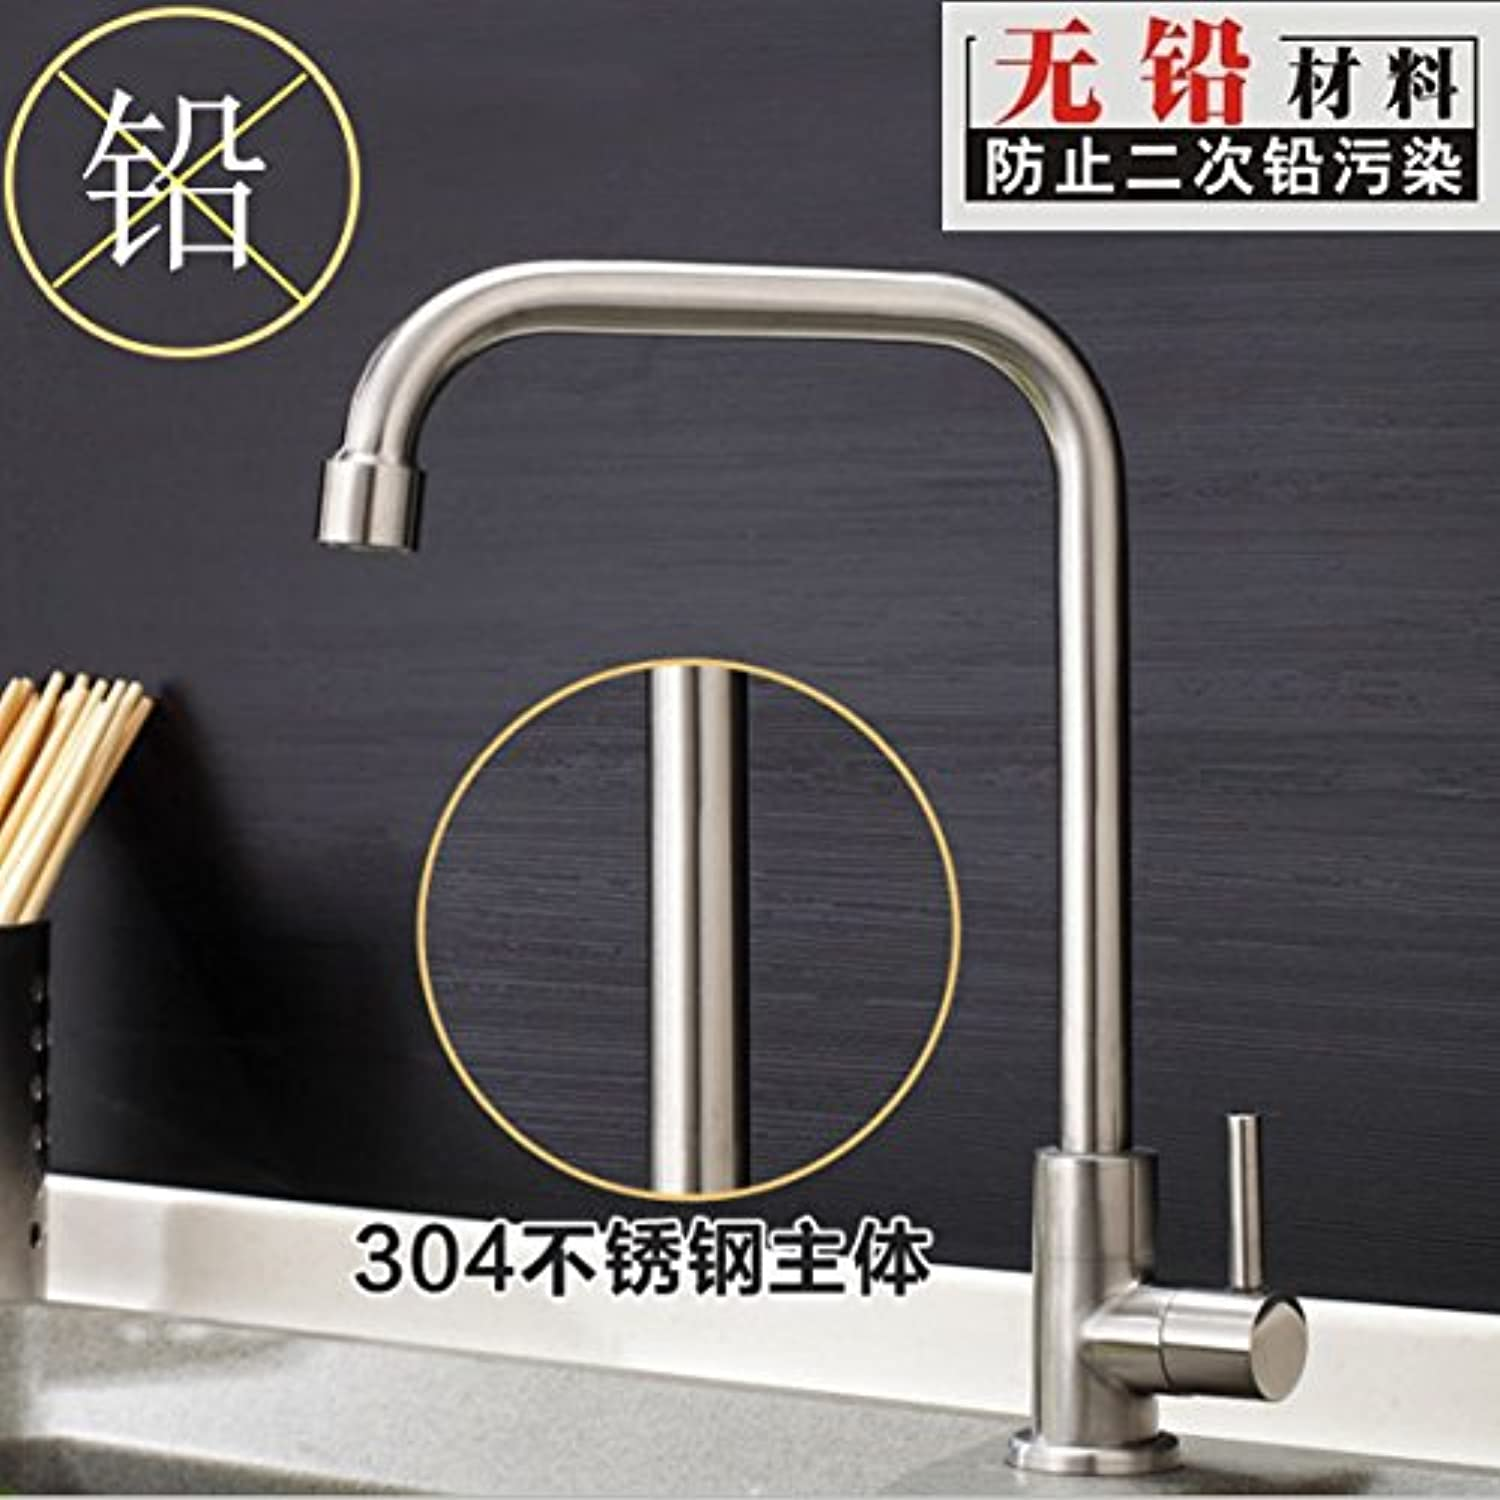 JWLT Domestic kitchen 304 single cold stainless steel lead free faucet wash basin faucet 304 stainless steel,7 word 304 stainless steel faucet